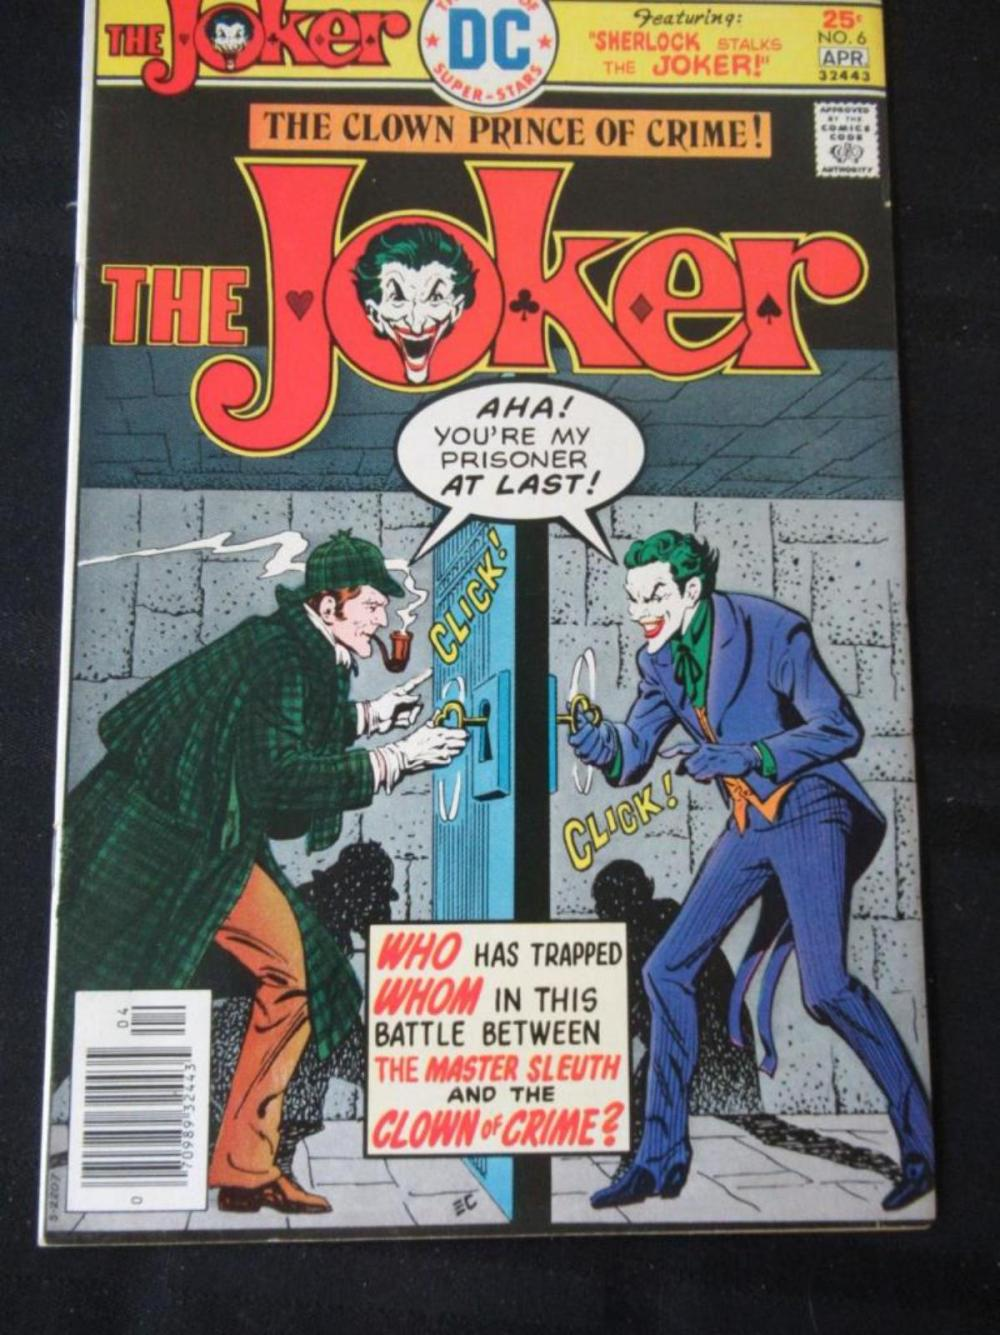 The Joker 25c #6 Master Sleuth and Clown of Crime